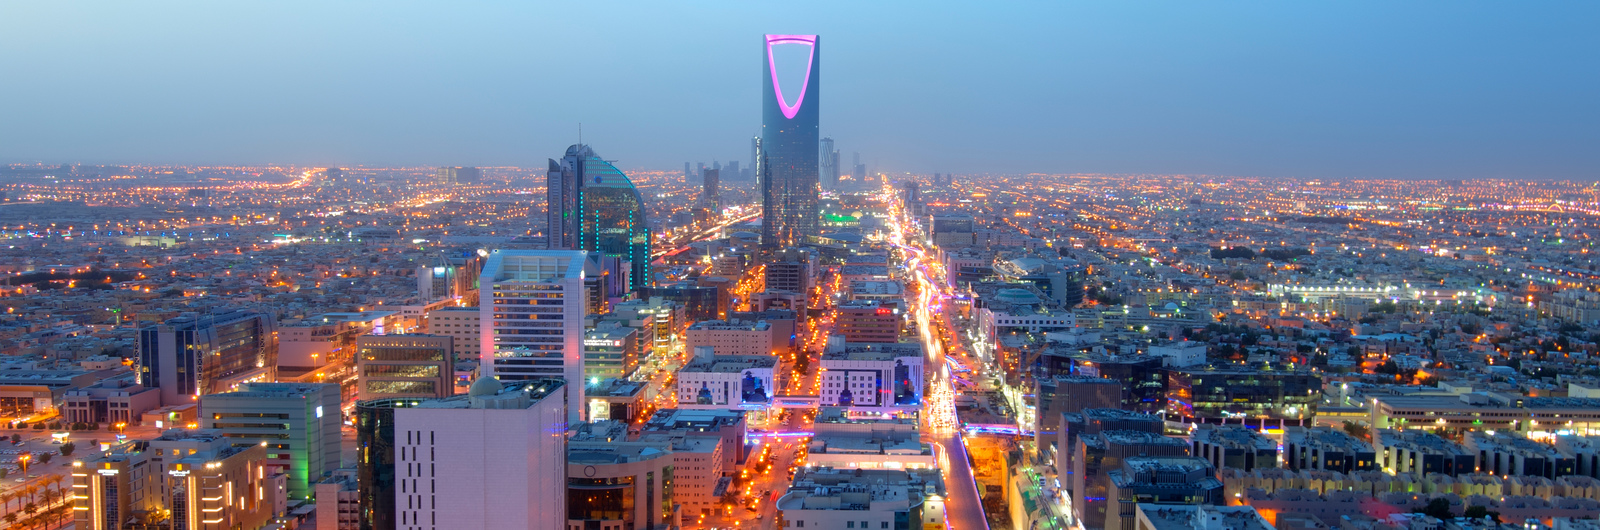 riyadh city header